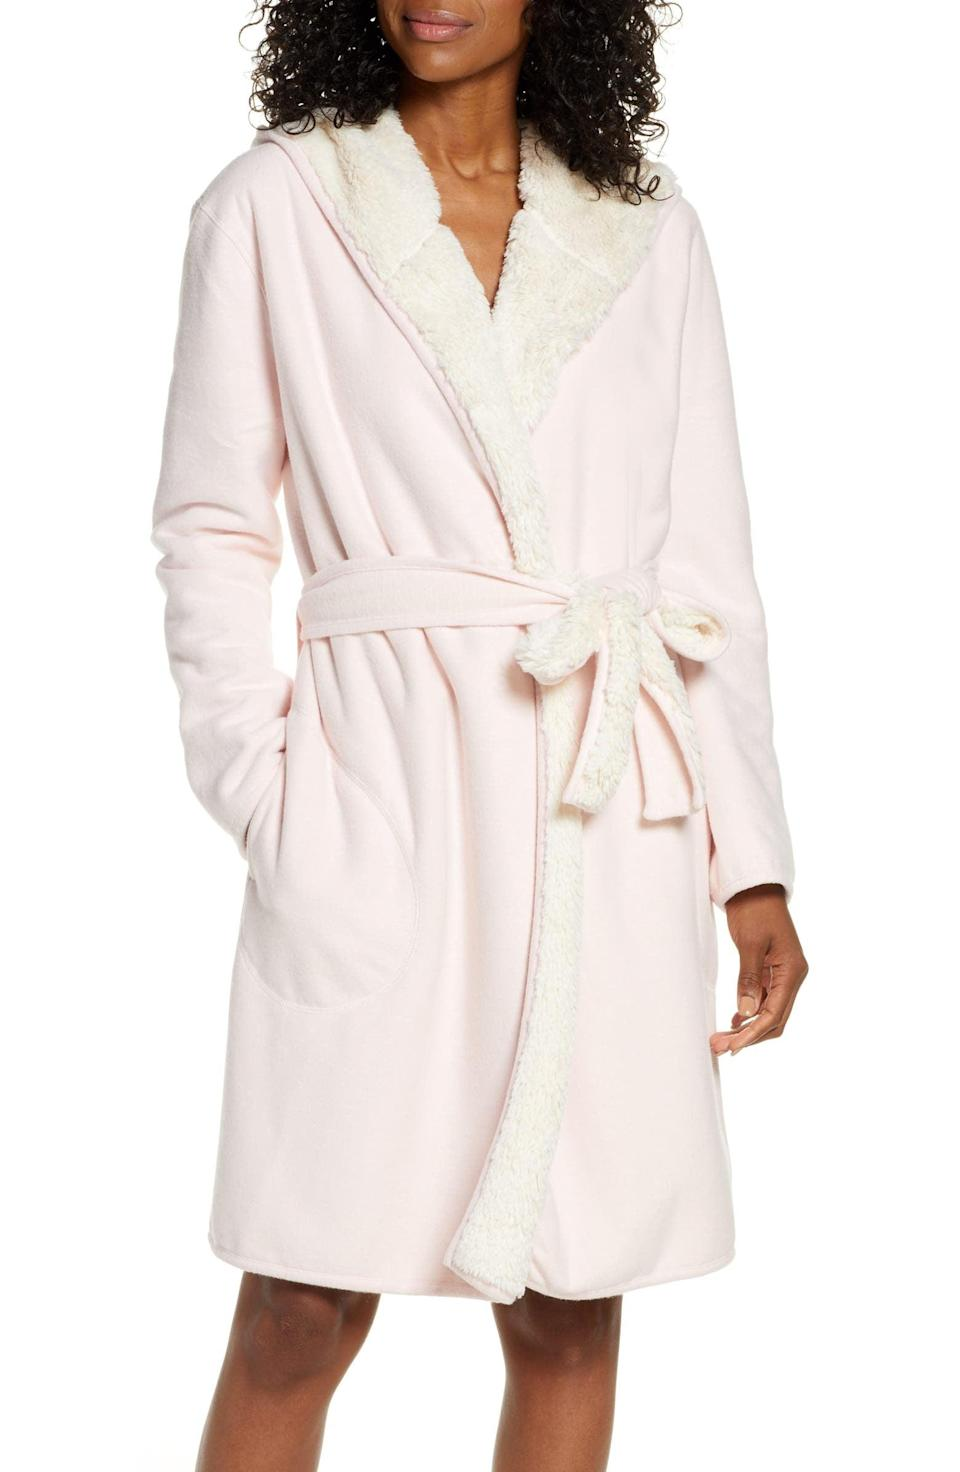 <p>Get this <span>UGG Portola Reversible Hooded Robe</span> ($148) for the person who loves fluffy stuff.</p>